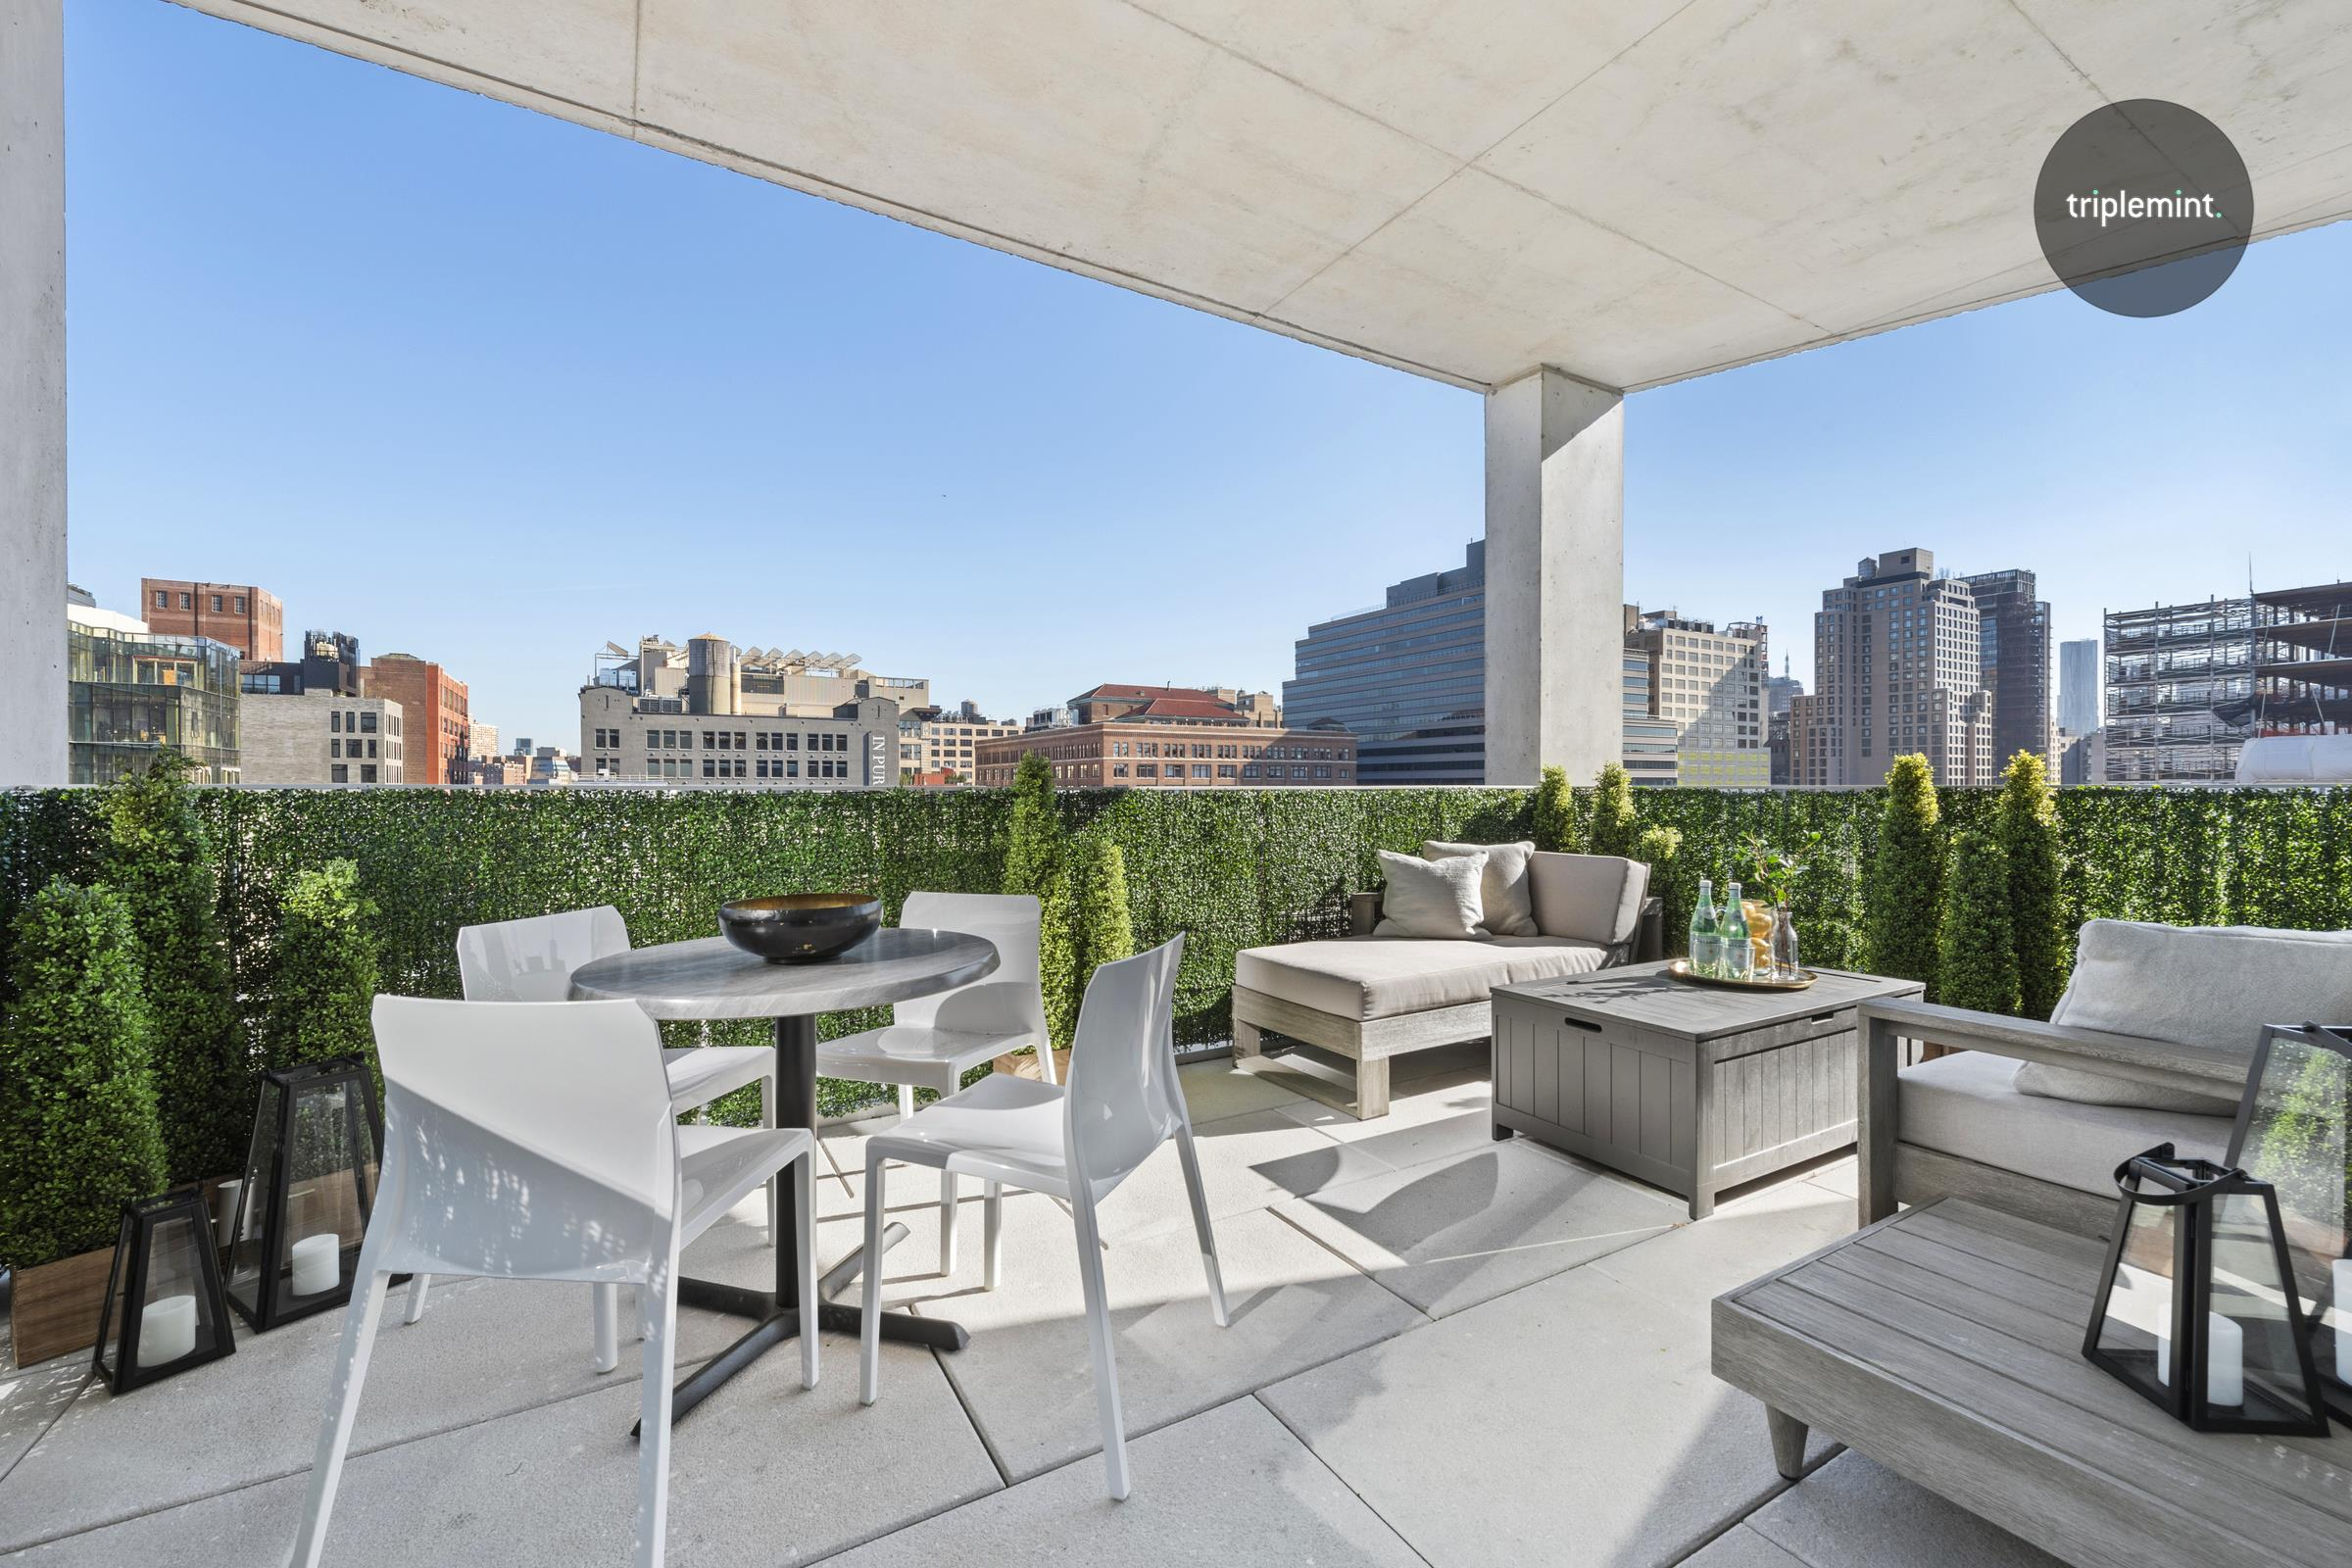 A show-stopping collaboration between Ian Schrager and Herzog & De Meuron, 160 Leroy is arguably the most iconic addition to the West Village waterfront. North 10C is the highest floor offered of this incredible two-bedroom layout and is ready for its new owner. Upon entering the 1,728 square foot home, you are immediately taken by the 11-foot ceilings, 12-inch wide Scandinavian Larch wood floors, and the glass wall of windows. It is immediately apparent that this home is unlike any other property offered in Manhattan. The entry features a beautifully designed powder room with a floating marble vanity and custom Corian sink finished with brushed copper fixtures and beautiful lighting.Off the long entry hall is where both generously proportioned bedrooms are located. Each bedroom faces north with full en-suite bathrooms and custom-built closets. The dramatic primary bedroom fits king sized furniture and features a stunning 5 fixture marble bathroom.The living room is dripping with wow factor that will take your breath away. The floor-to-ceiling windows on all three sides offer views in every direction, featuring the Empire State Building, Hudson River, and sweeping views across the village.Off of the living room, your private terrace awaits you which is nearly 200 square feet. Enjoy your coffee and evening sunsets with northern, eastern, and southern exposures.The kitchen is a custom designed, Bulthaup Kitchen with Scandinavian Larch wood cabinets and hand selected Sivec marble slab, countertops, and backsplash. The appliances include a Sub-Zero refrigerator/freezer, Wolf oven, Gaggenau cooktop, Miele dishwasher, Sub-Zero wine refrigerator, Wolf coffee/espresso machine, and a Wolf steam oven. 160 Leroy is a full-service building with a 24-hour doorman and concierge,     cobblestone porte-cochere, spa with 70-foot pool, whirlpool, fitness center, yoga/Pilates studio, steam room, sauna, massage room, children's playroom, and clubhouse with catering kitchen.